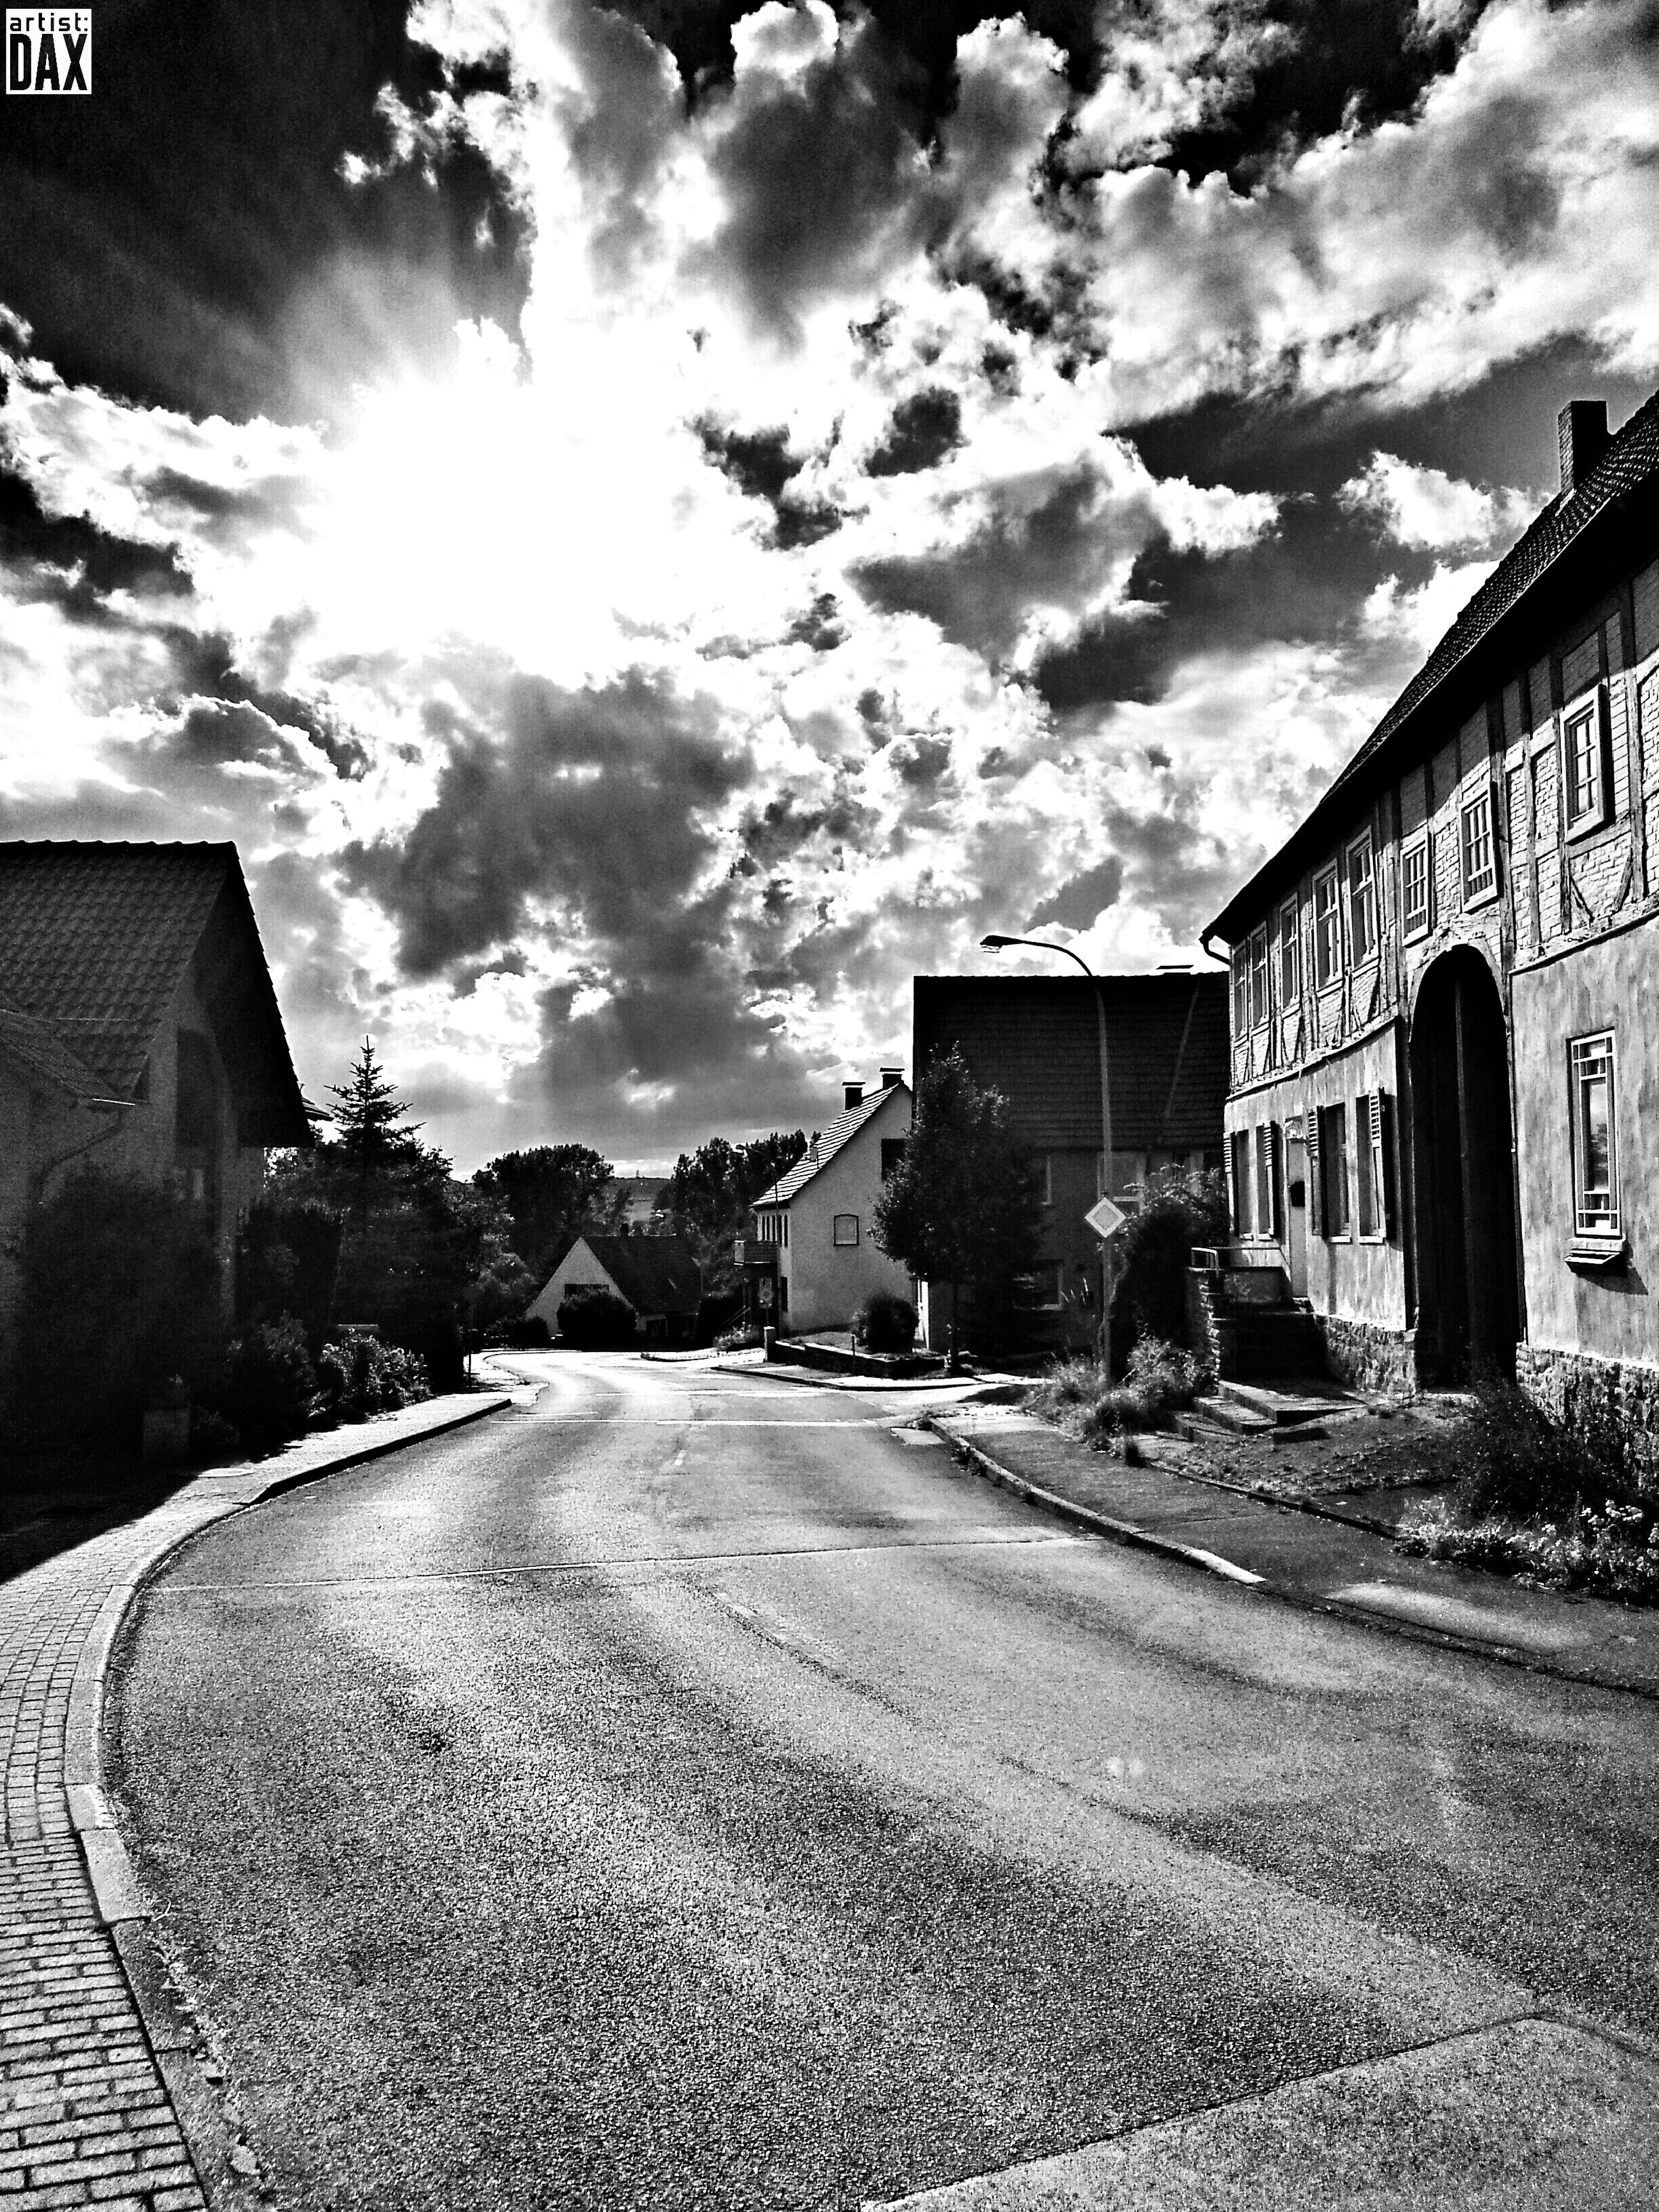 Streetphotography or The Road Sign artist:DAX PHOTOGRAPHOHOLIC | born to capture | artistDAX photographoholic outdoor architecture architektur streetphotography urban smartshots Schwarzweiß blackandwhite dramaticsky Dramatic Sky